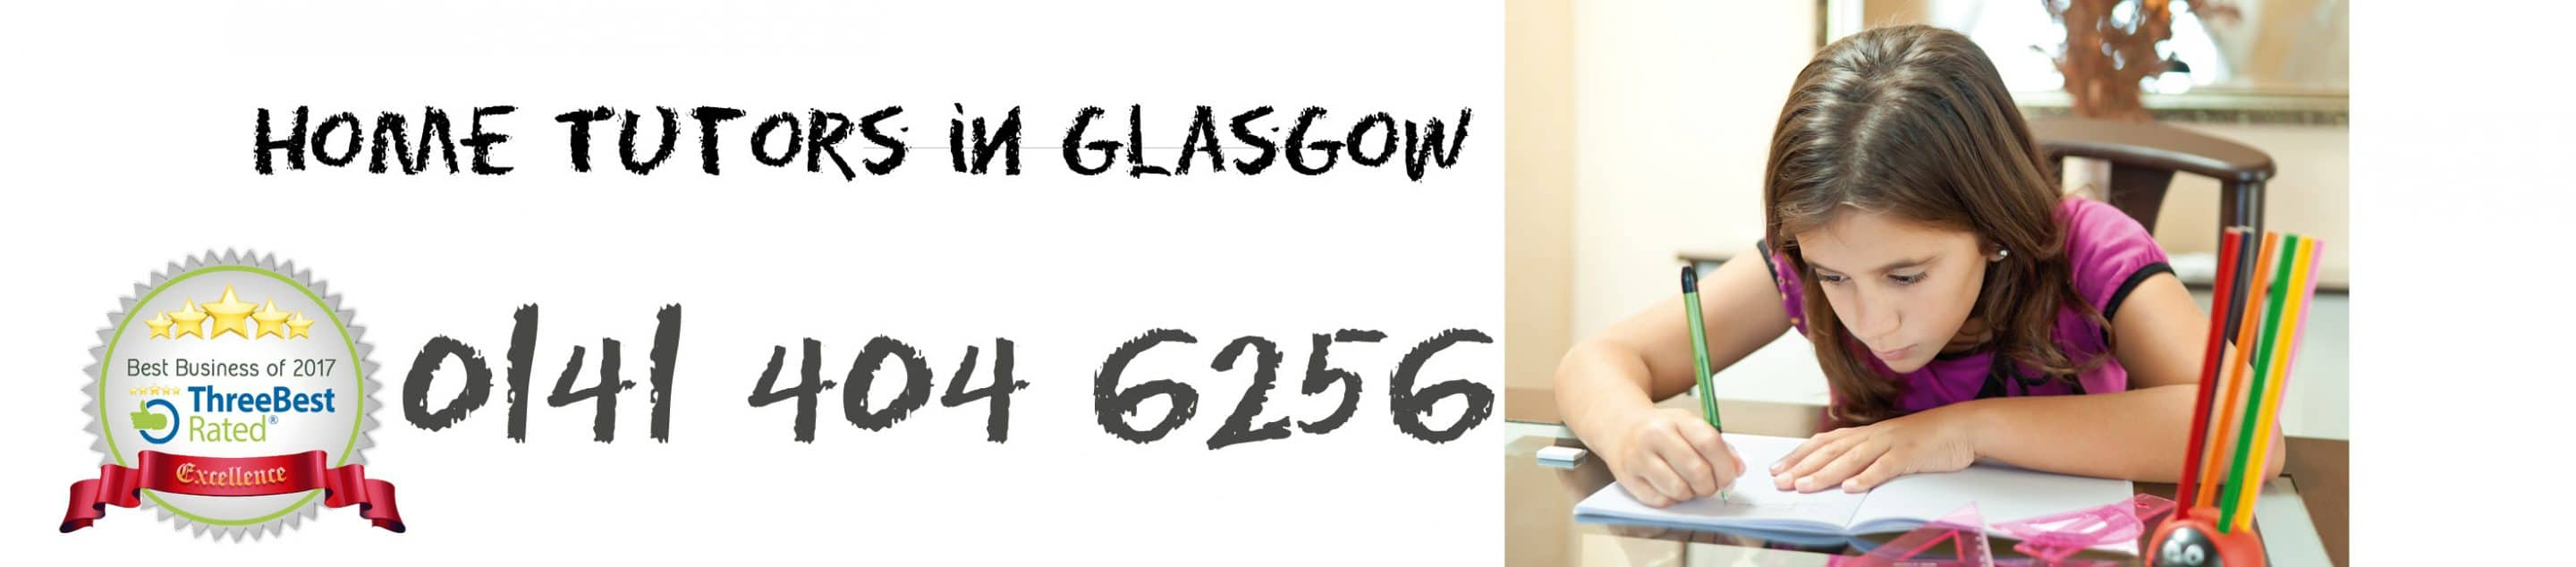 Home Tutors in Glasgow